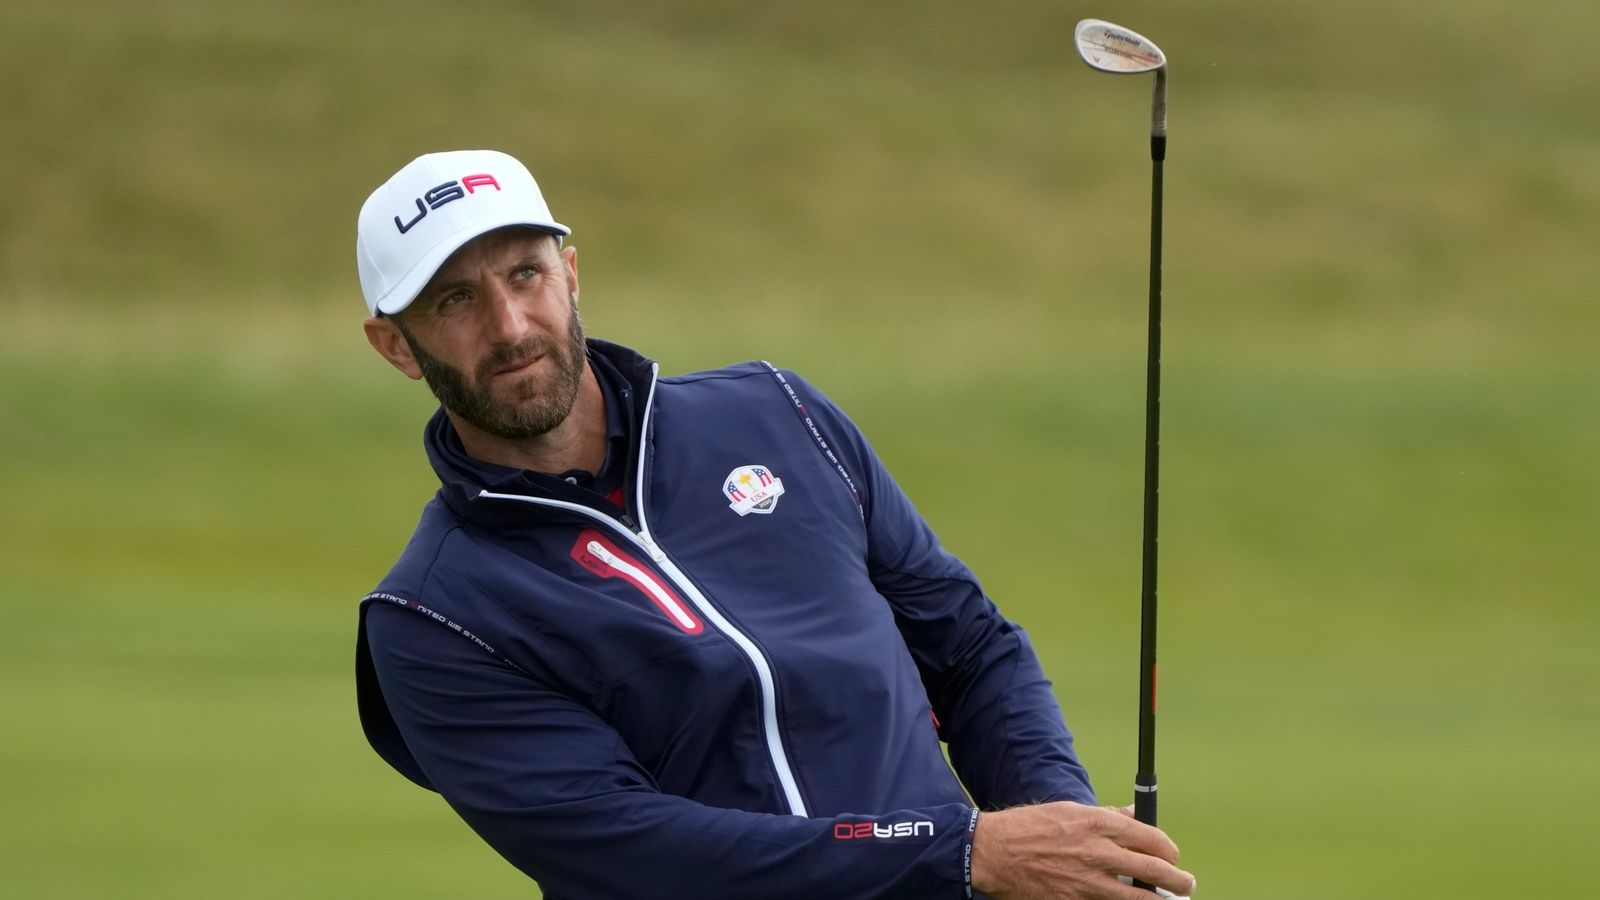 Dustin Johnson a Ryder Cup captain for Team USA? Two-time major winner 'would love' future role | Golf News